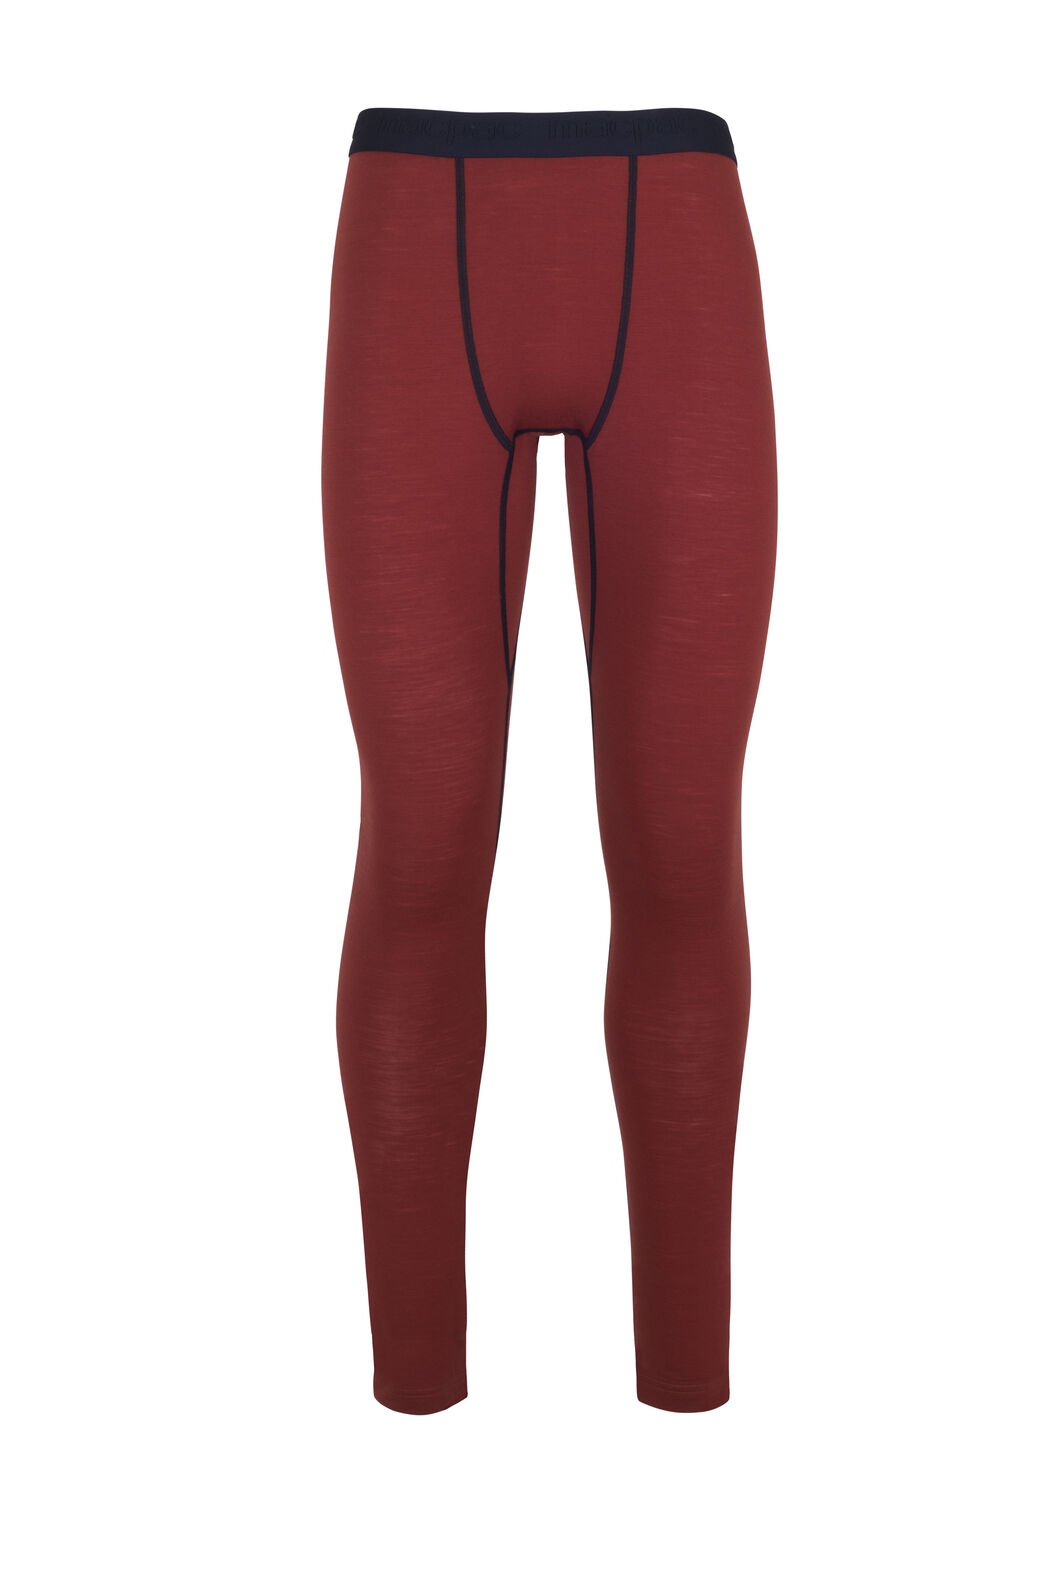 Macpac 180 Merino Long Johns - Men's, Red Ochre, hi-res